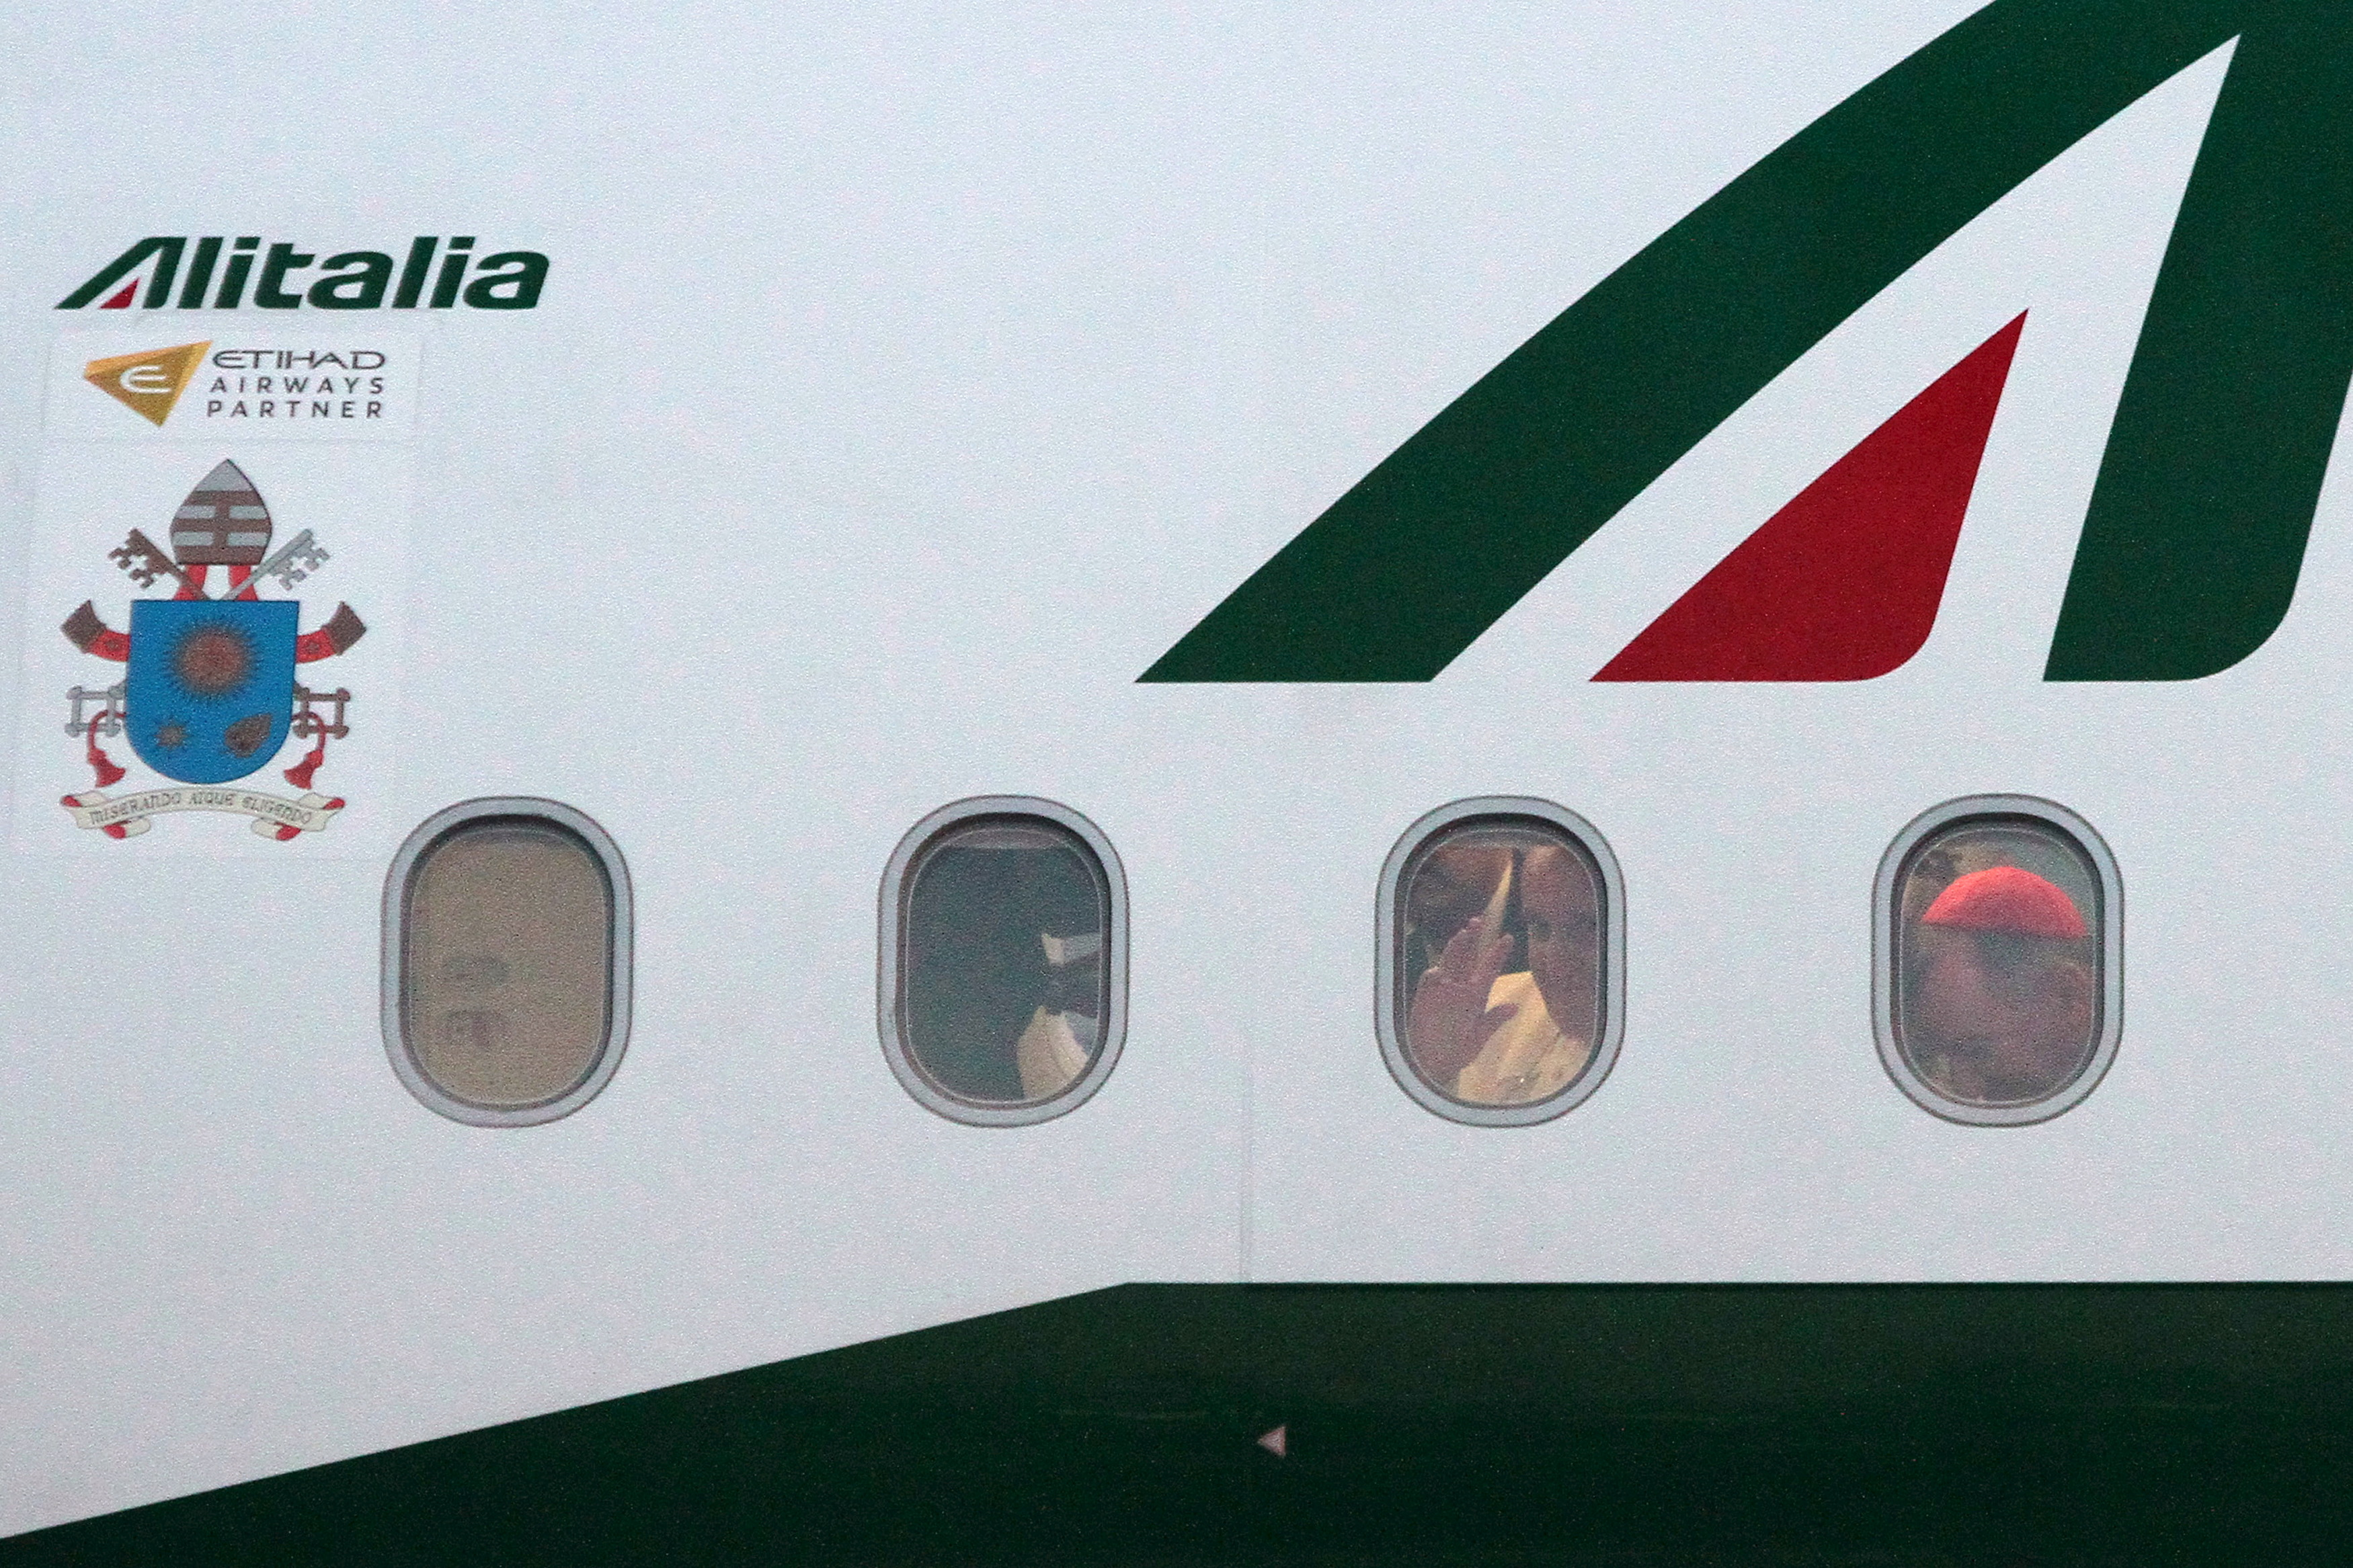 Pope Francis waves through window of airplane at the Sarajevo airport